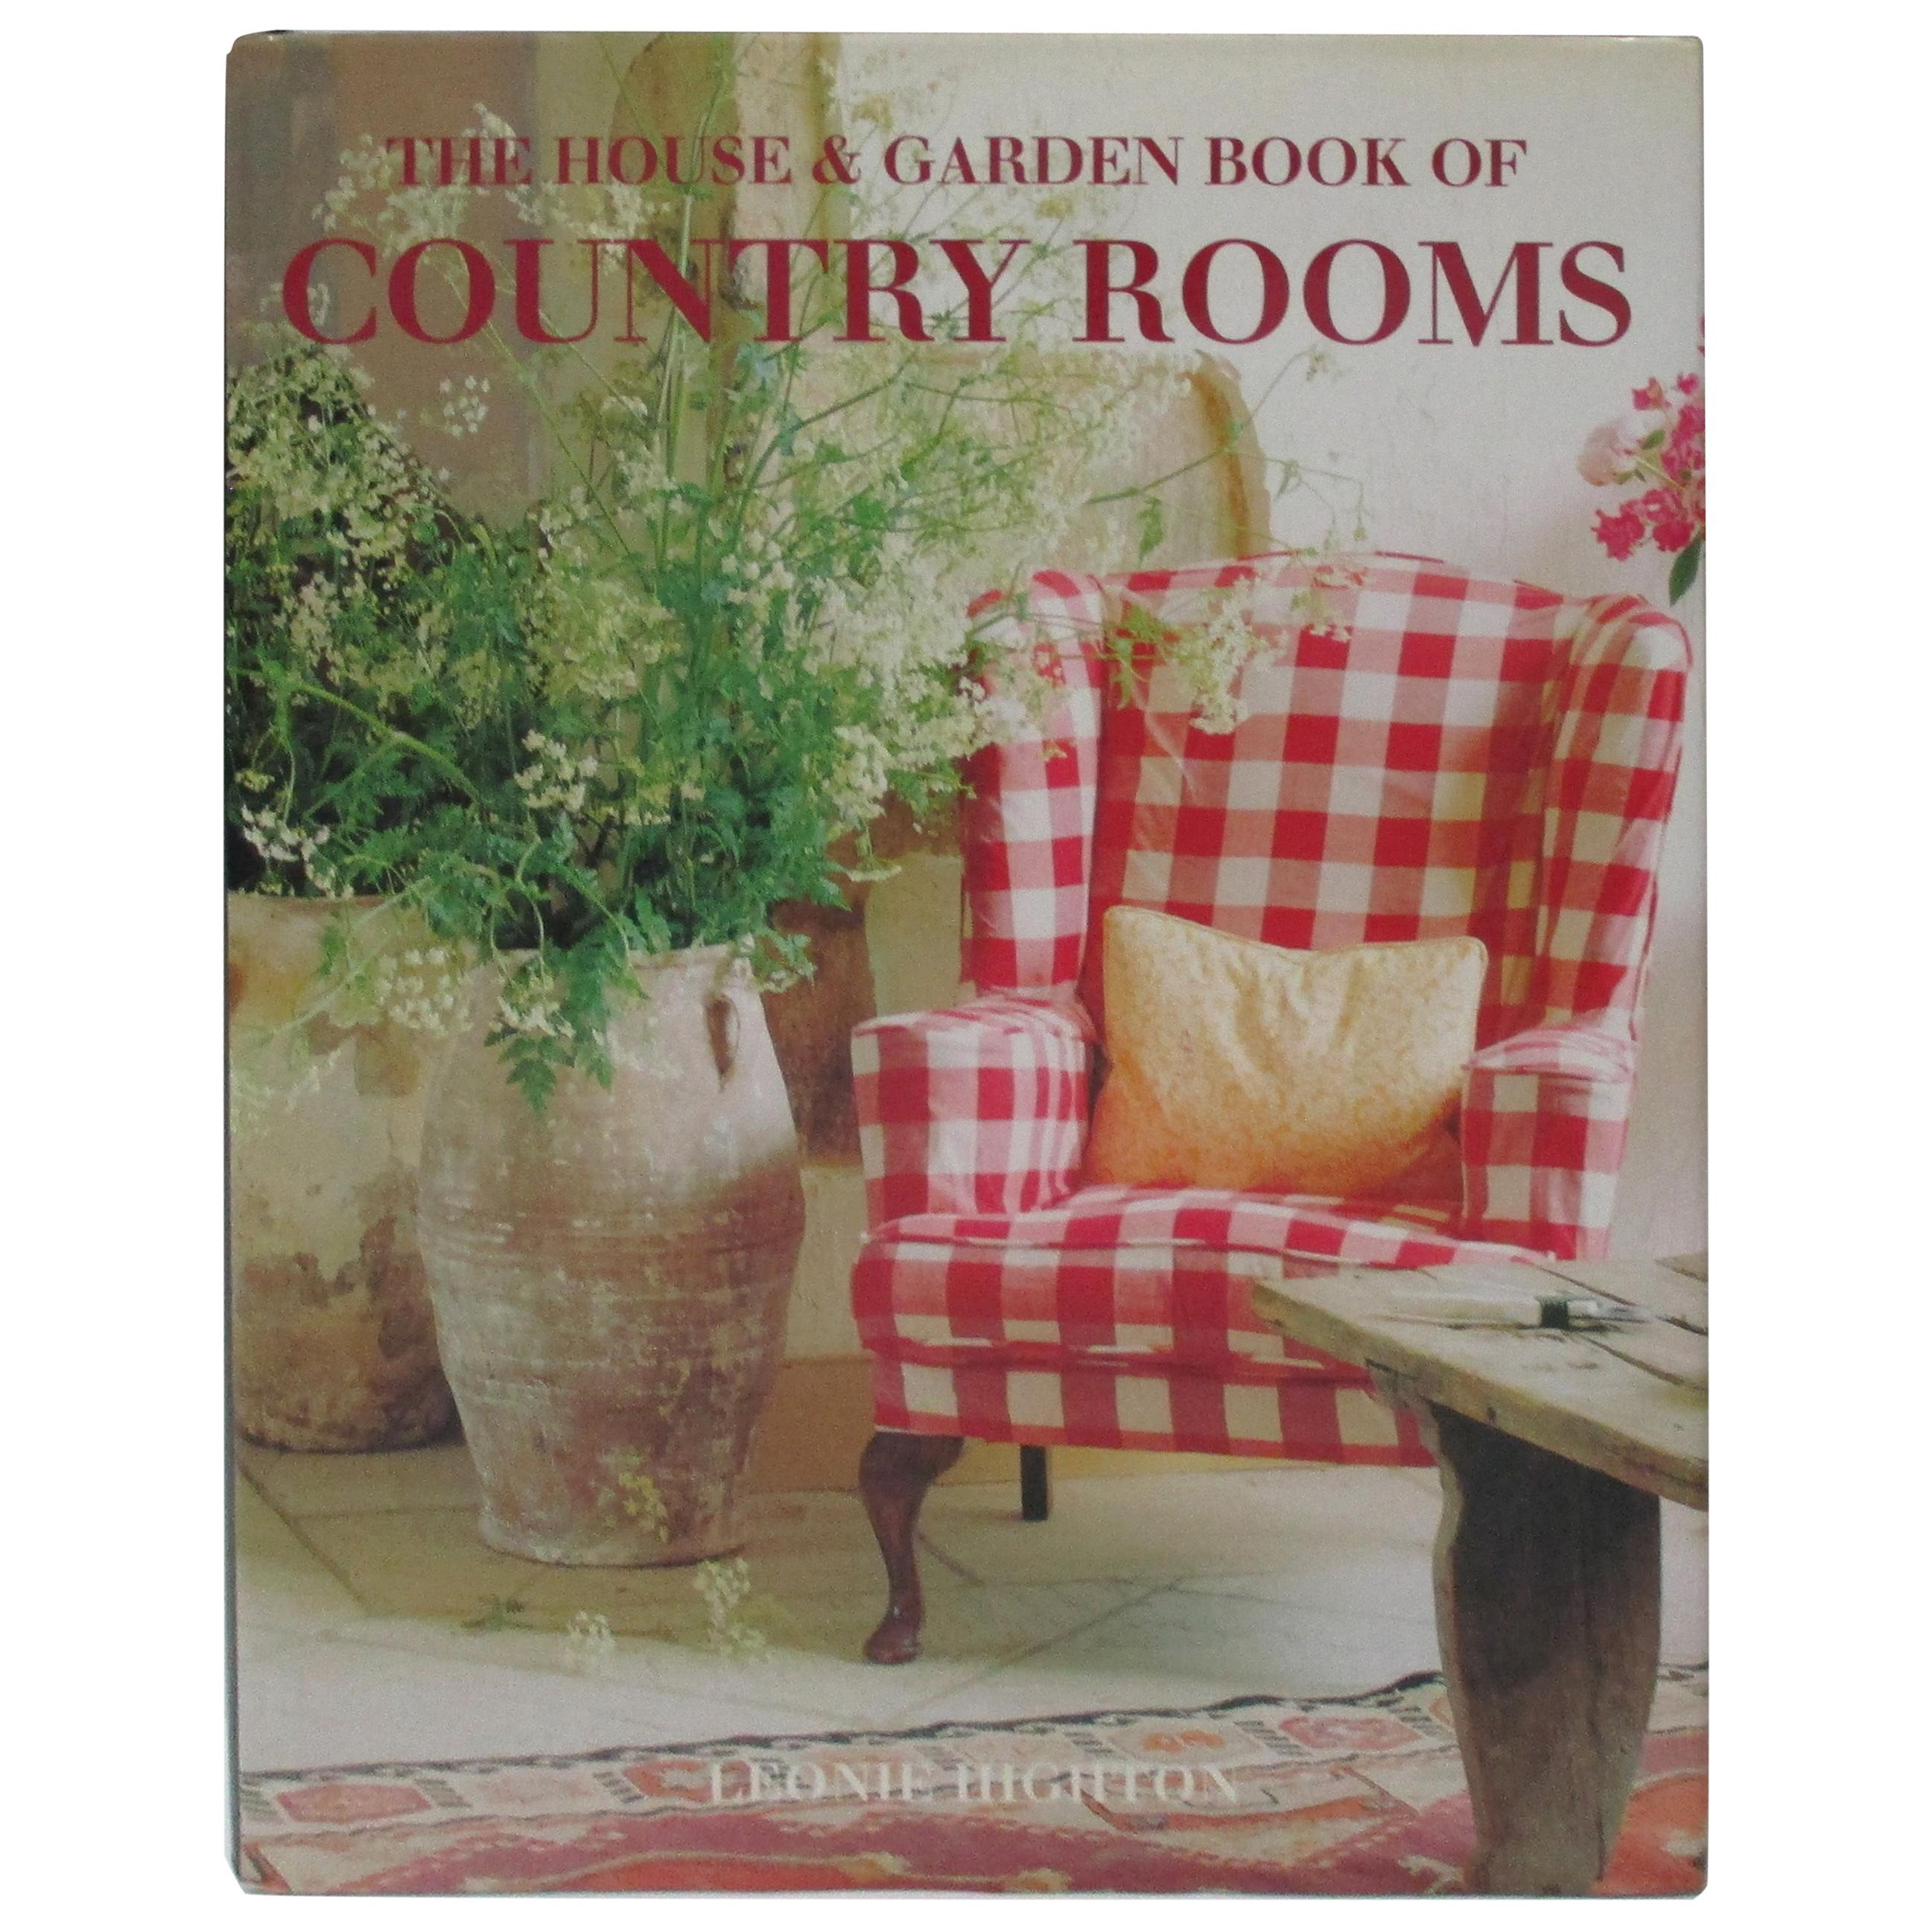 The House and Garden Hardcover Book of Country Rooms